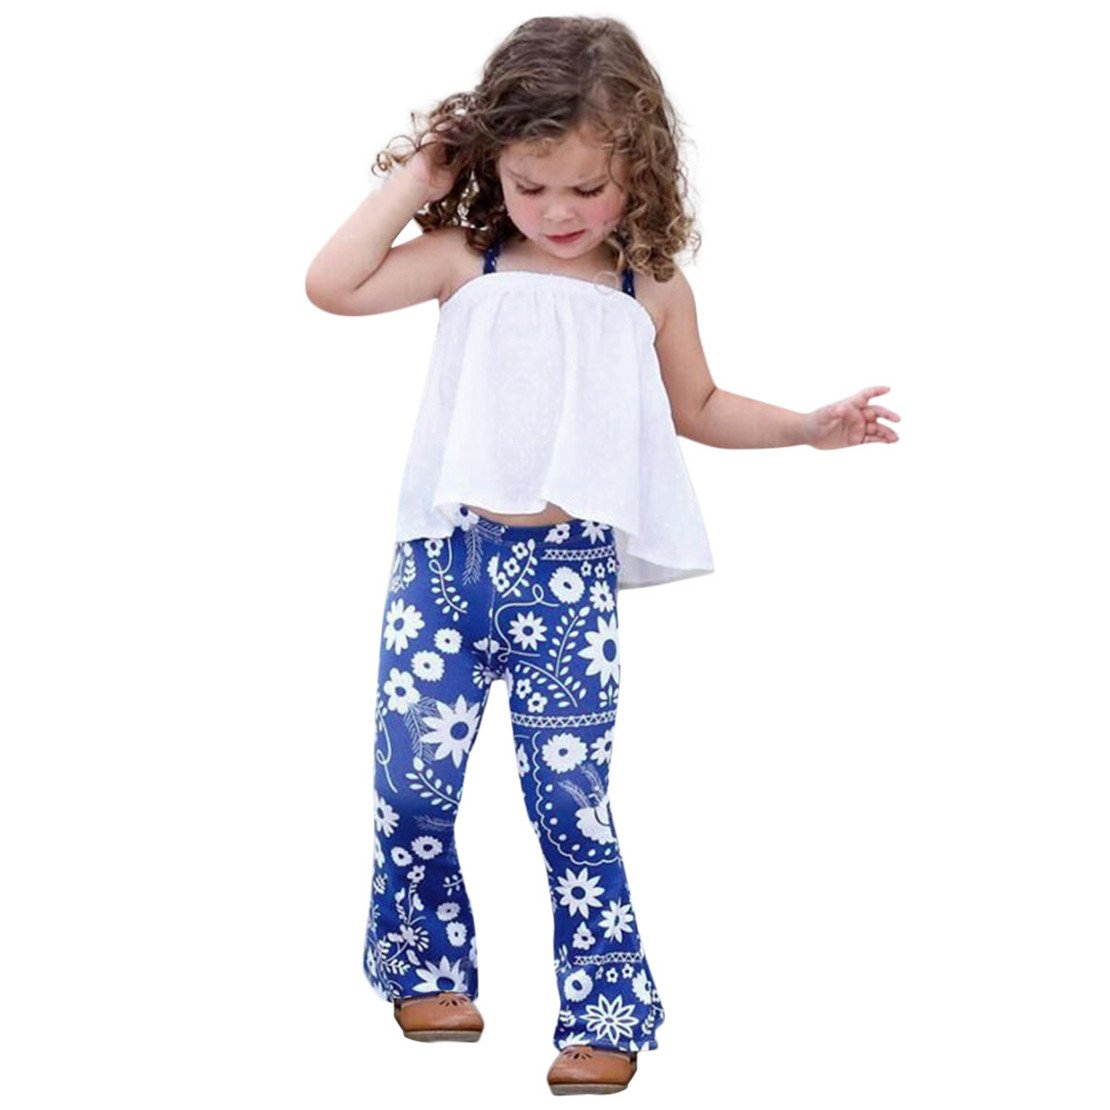 ZHANGVIP 2018 New 2Pcs Toddler Baby Kids Girls Solid Off Shoulder Tops+Floral Pants Set Outfits (5T, Blue)